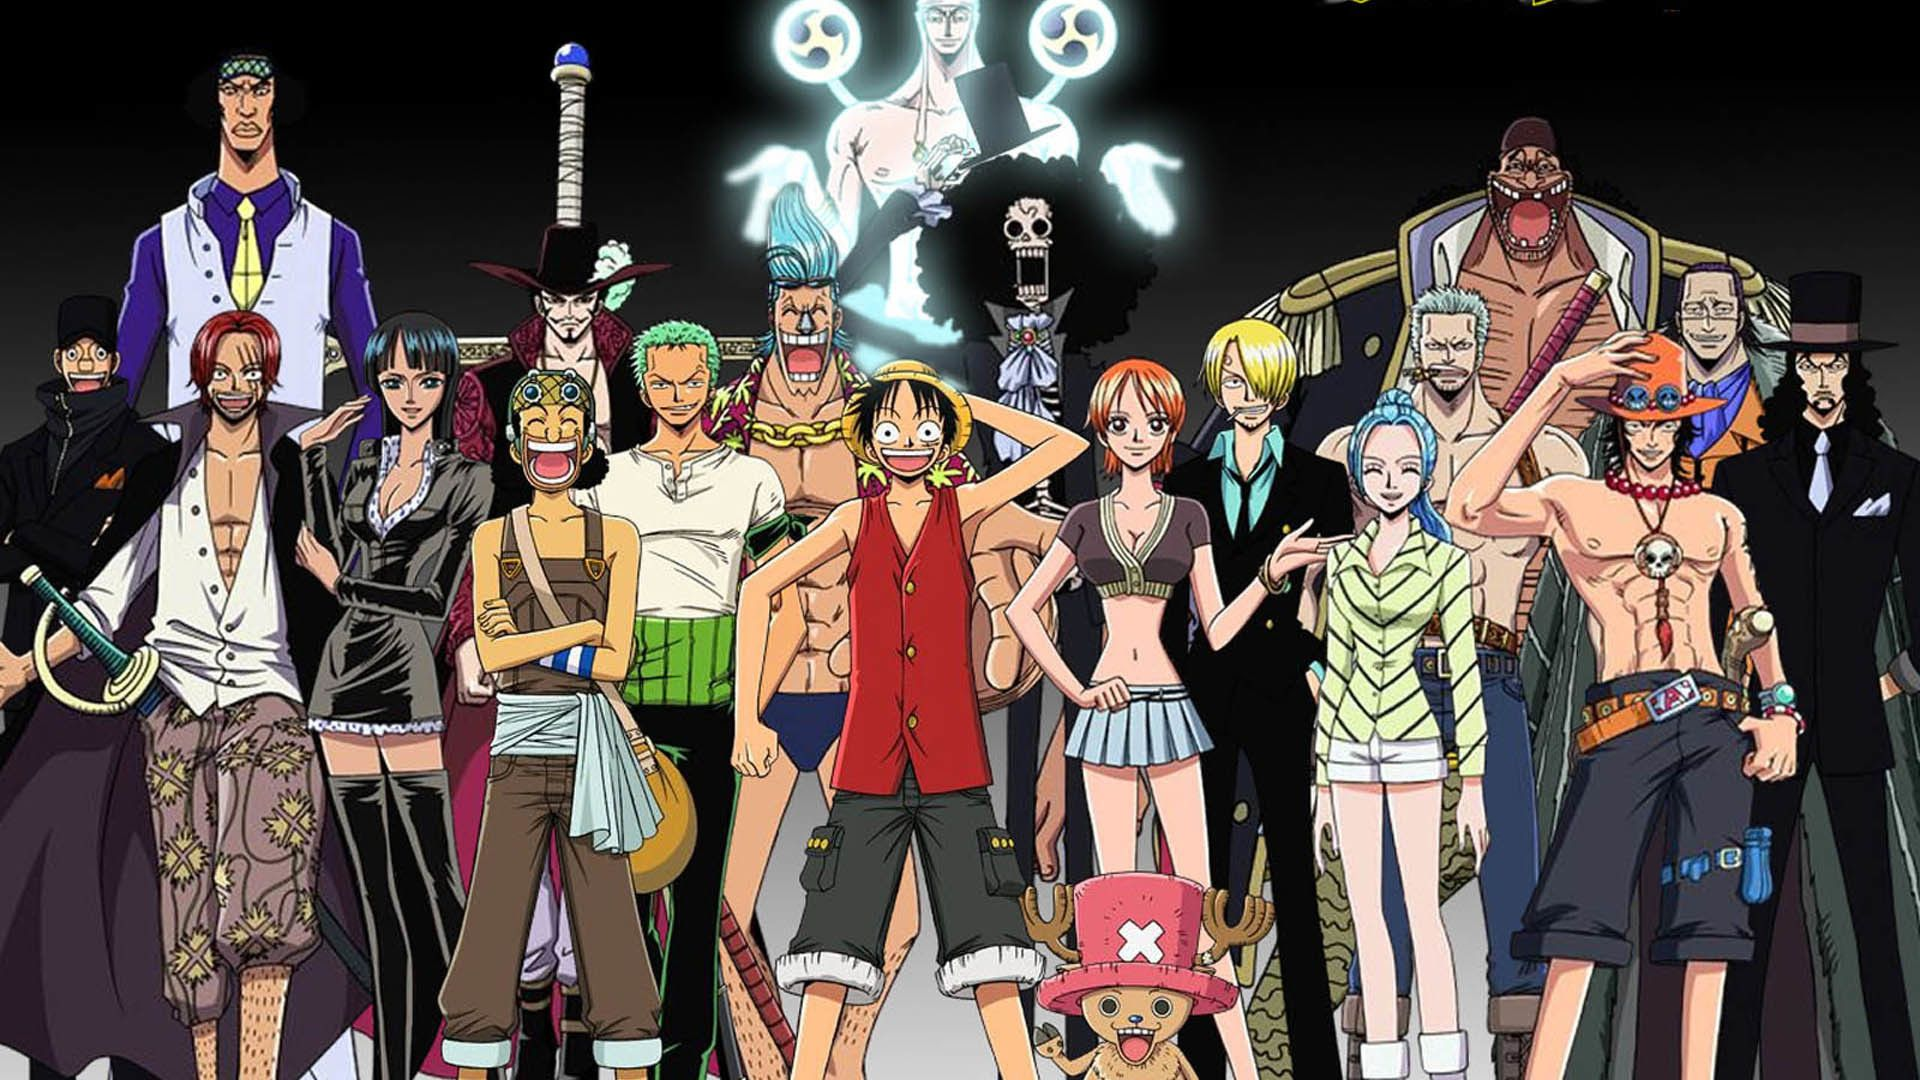 One Piece Wallpaper High Quality One Piece High Quality Wallpapers Download Free For Pc Only High Definition Wall In 2020 One Piece Crew One Piece Hd Anime Wallpapers